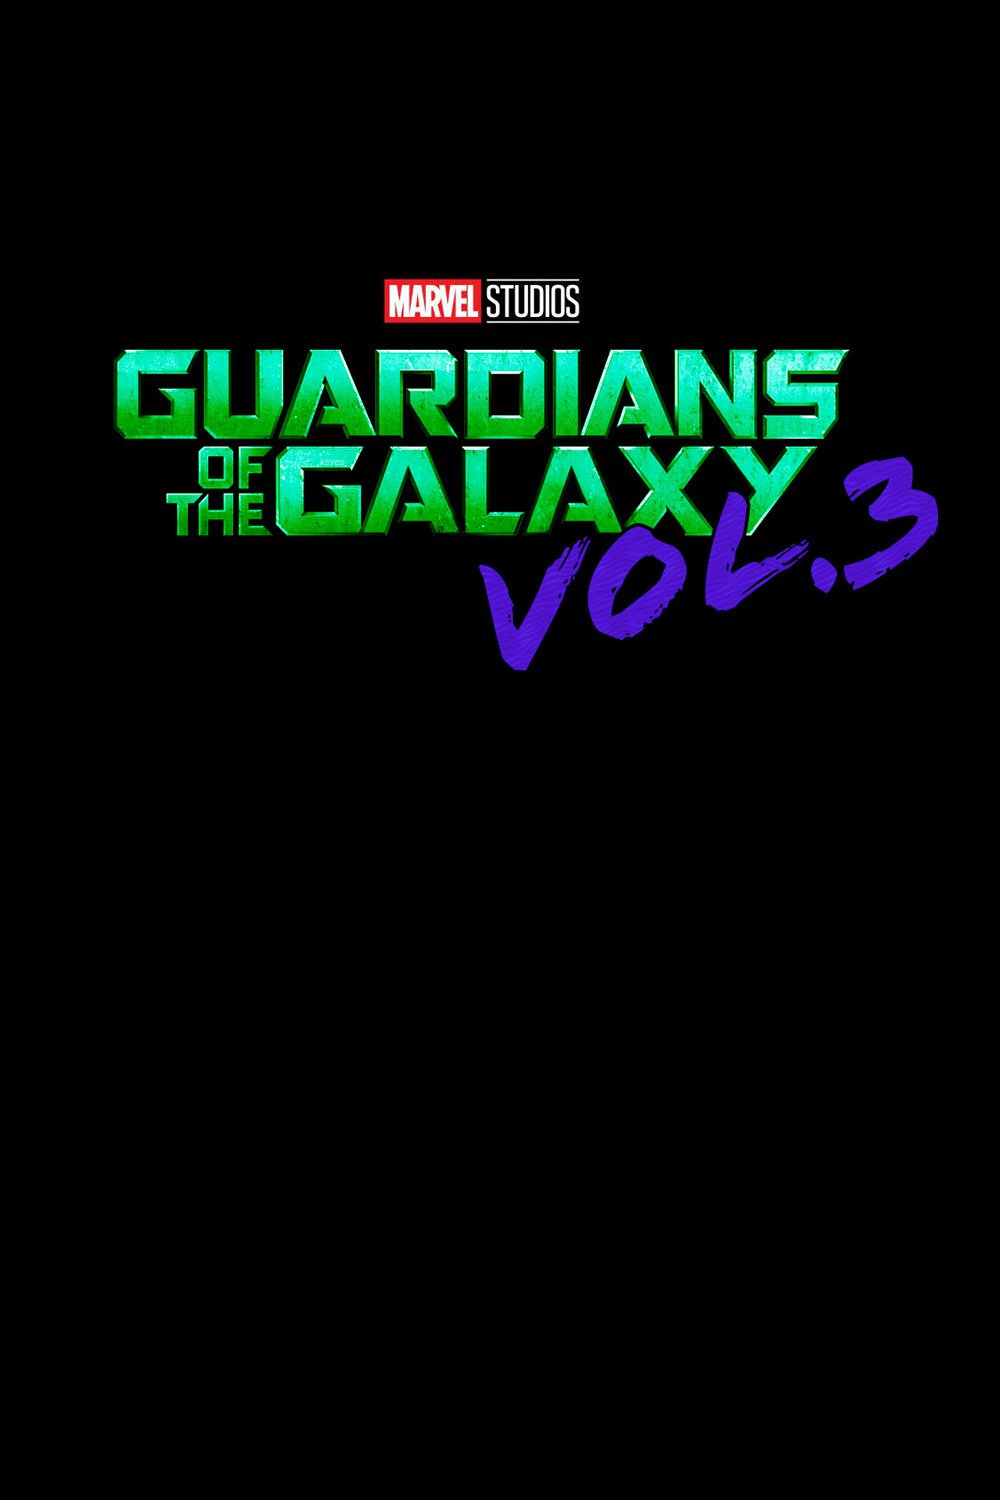 Guardians Of The Galaxy Vol 3 Teaser Poster